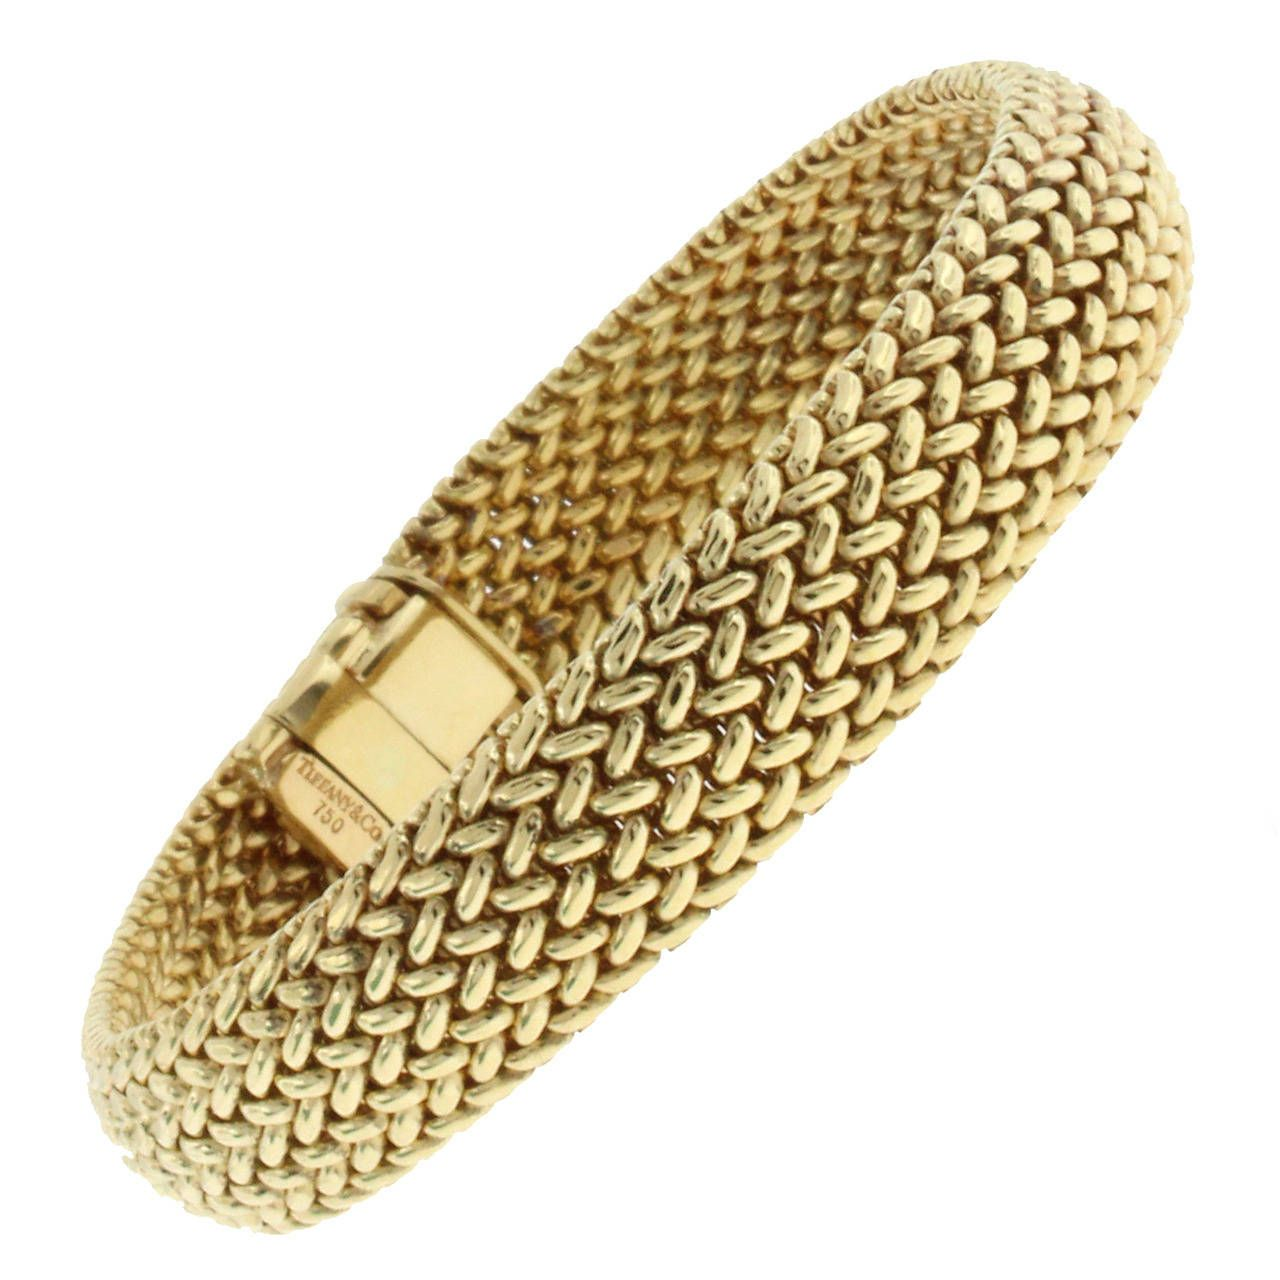 Tiffany Co Gold Mesh Bracelet This Is 9 5 Millimeters In Width And 18 Karat Yellow